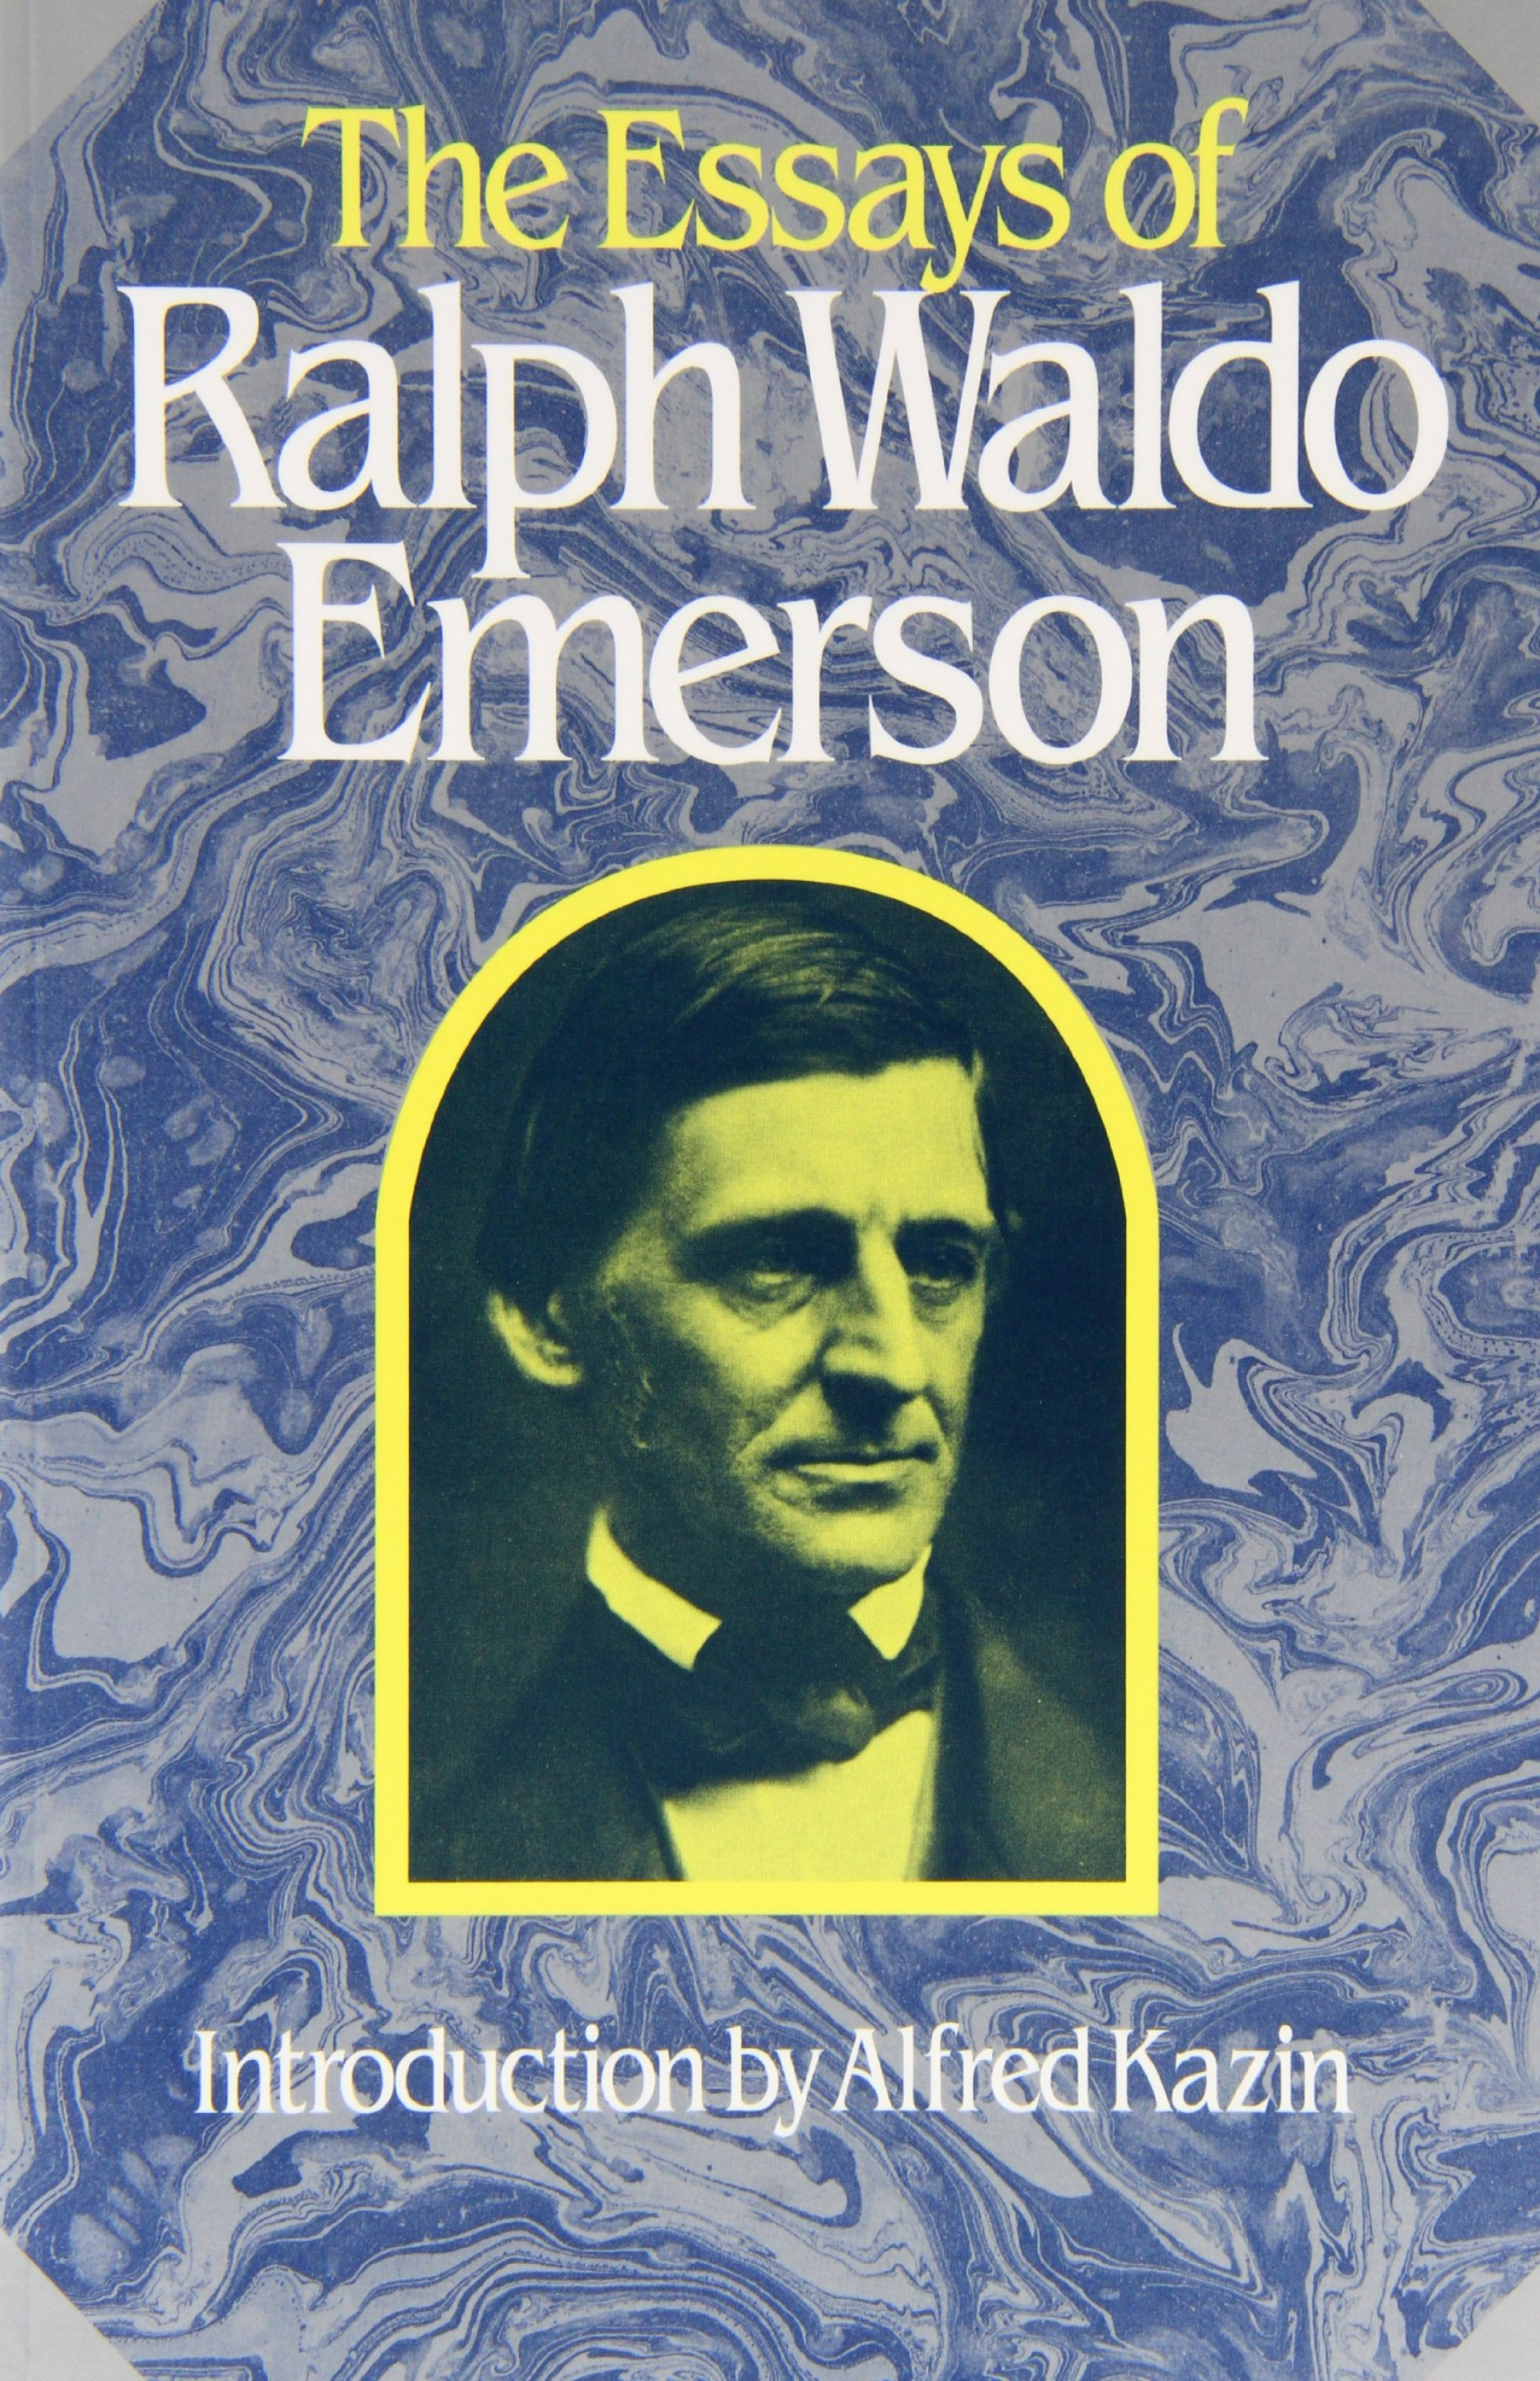 001 Ralph Waldo Emerson Essays Essay Example Unusual Nature And Selected By Pdf Download First Second Series 1920